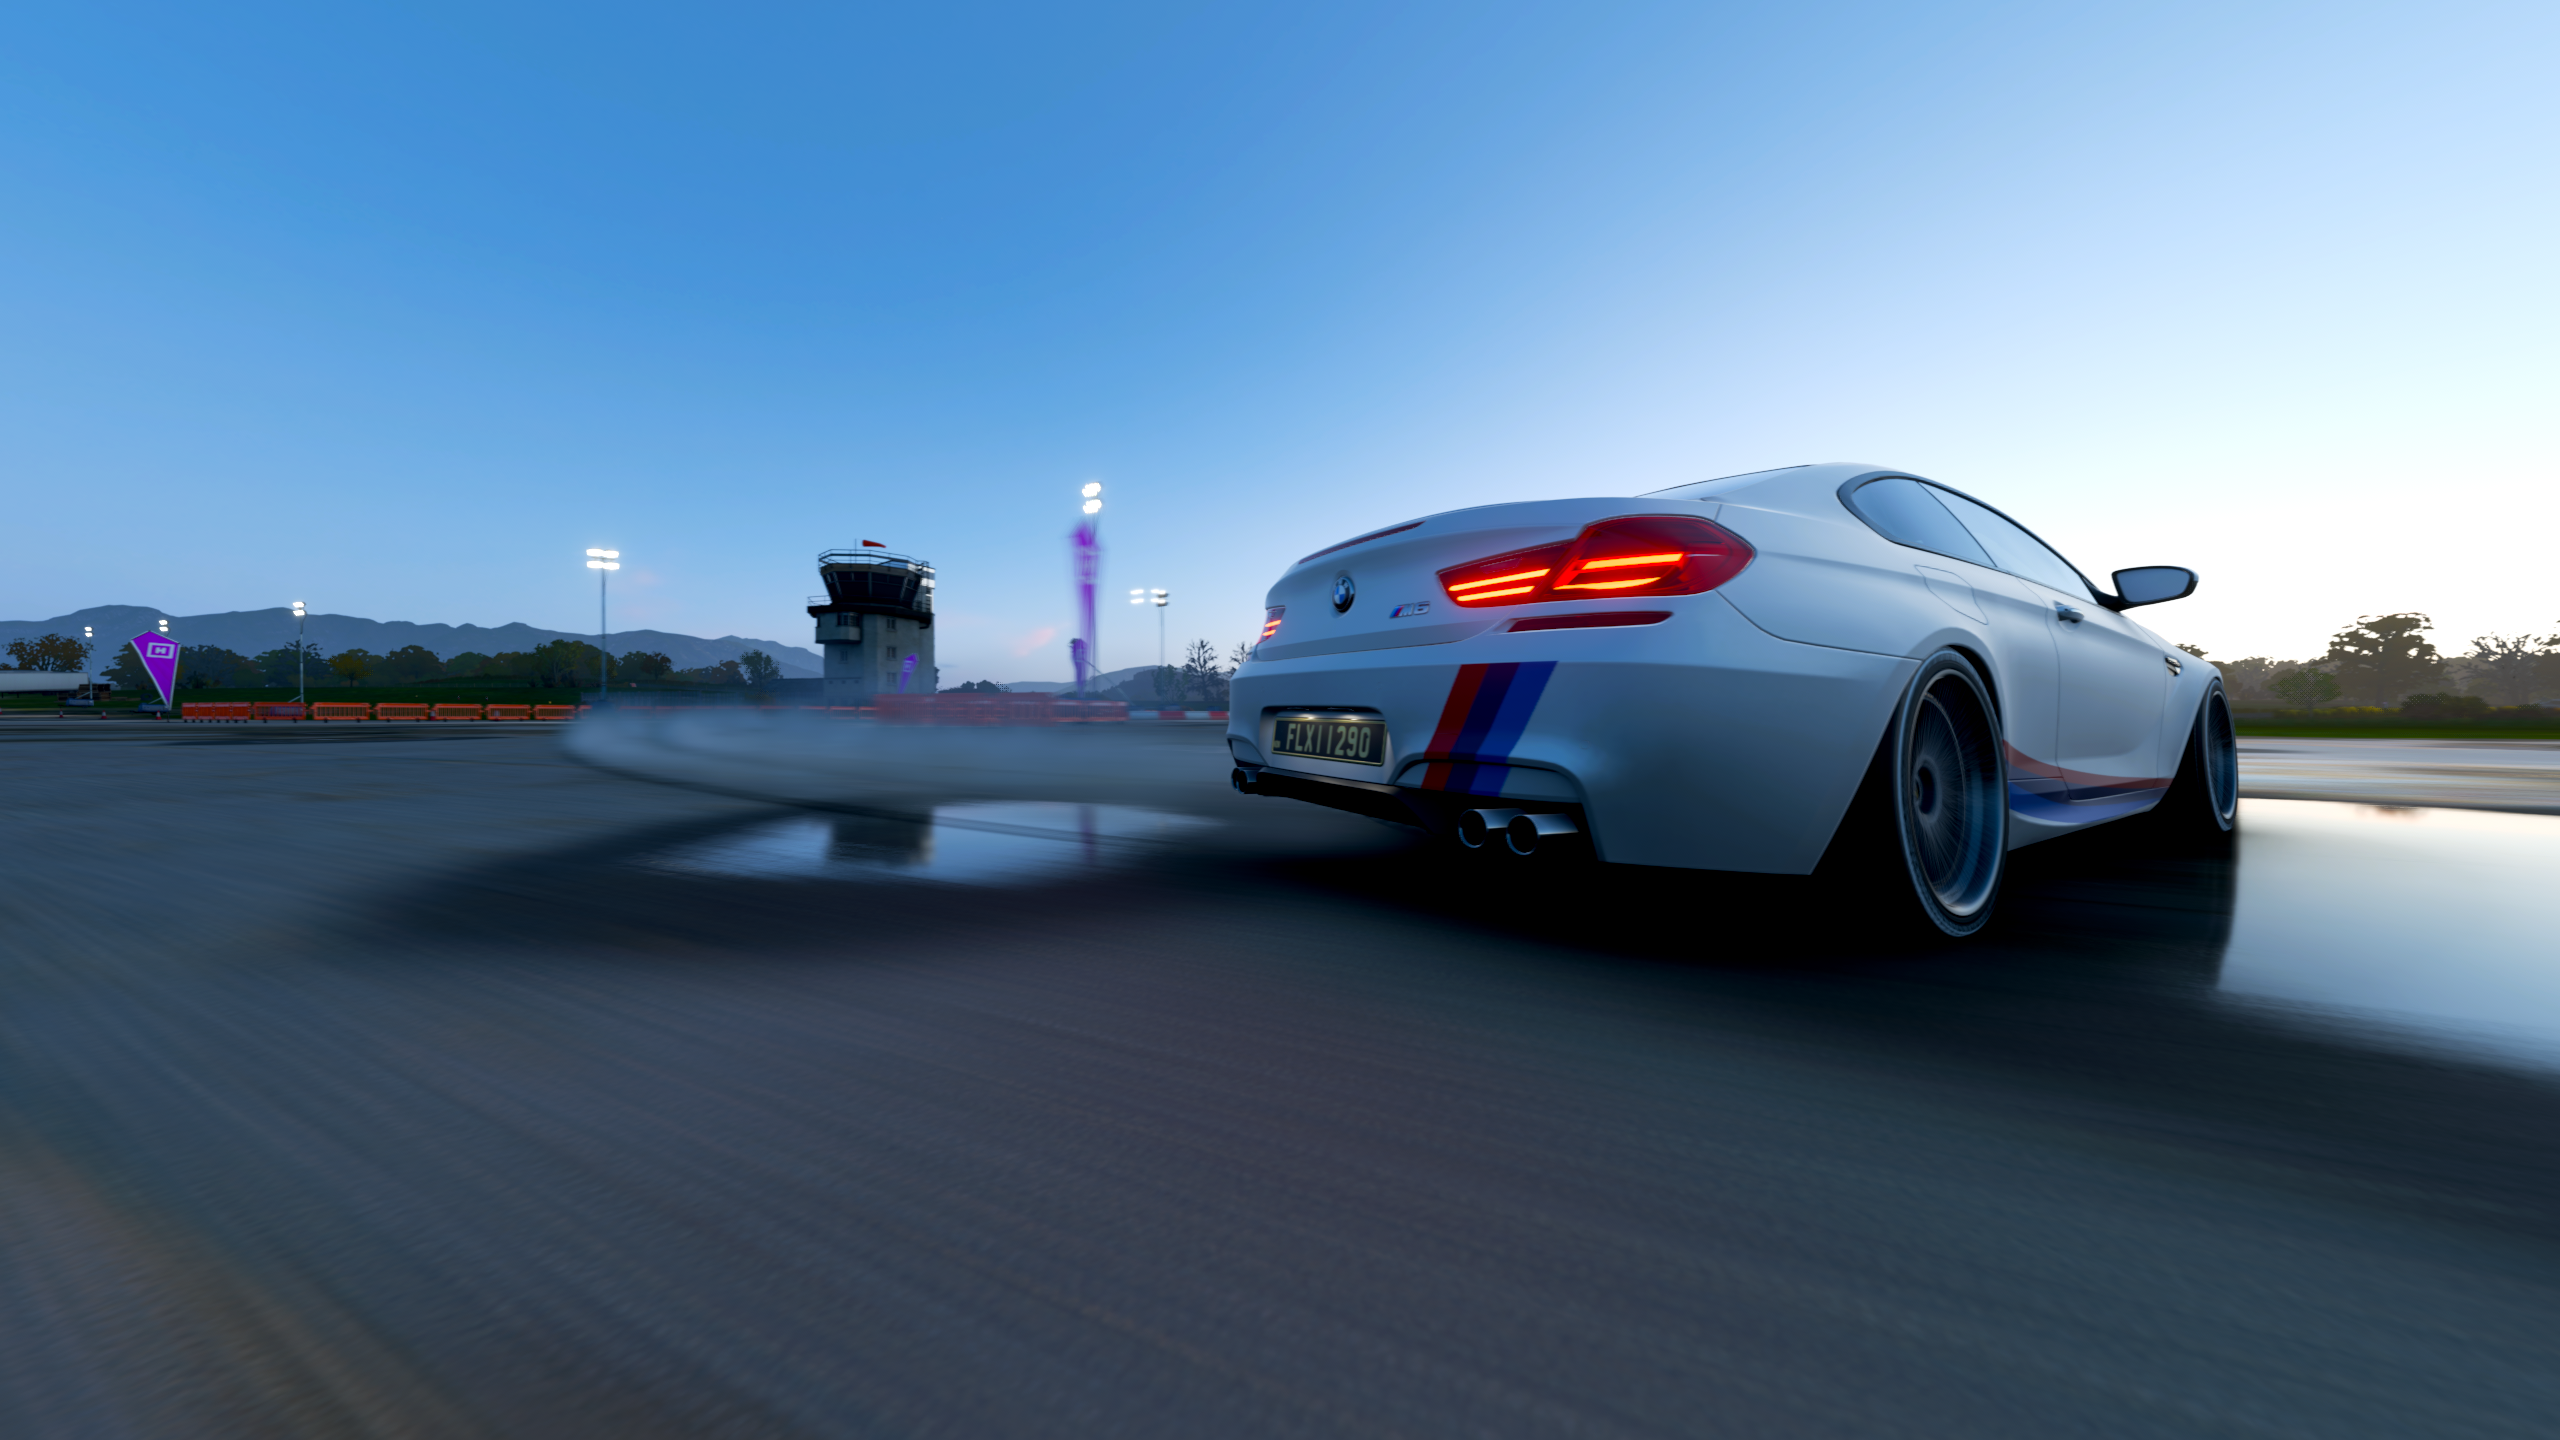 Forza Hzn 4 Hd Wallpaper Background Image 2560x1440 Id 954422 Wallpaper Abyss